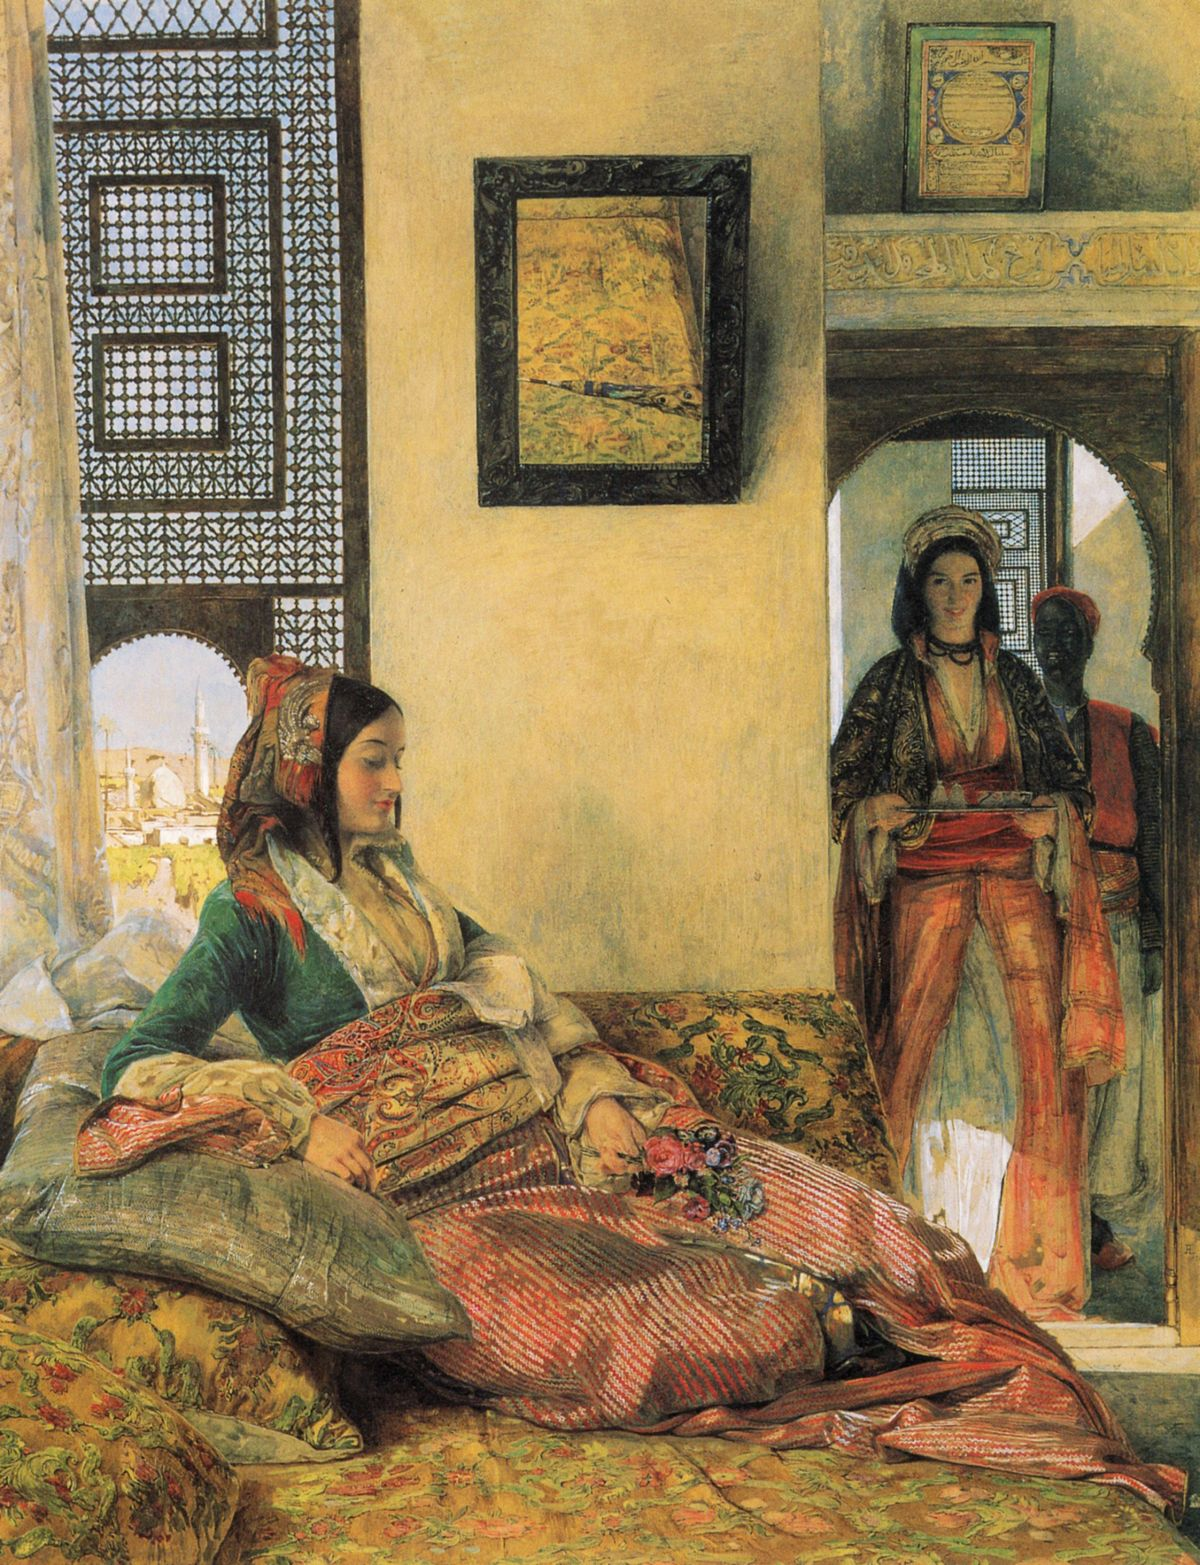 Life in the Hareem Cairo by John Frederick Lewis